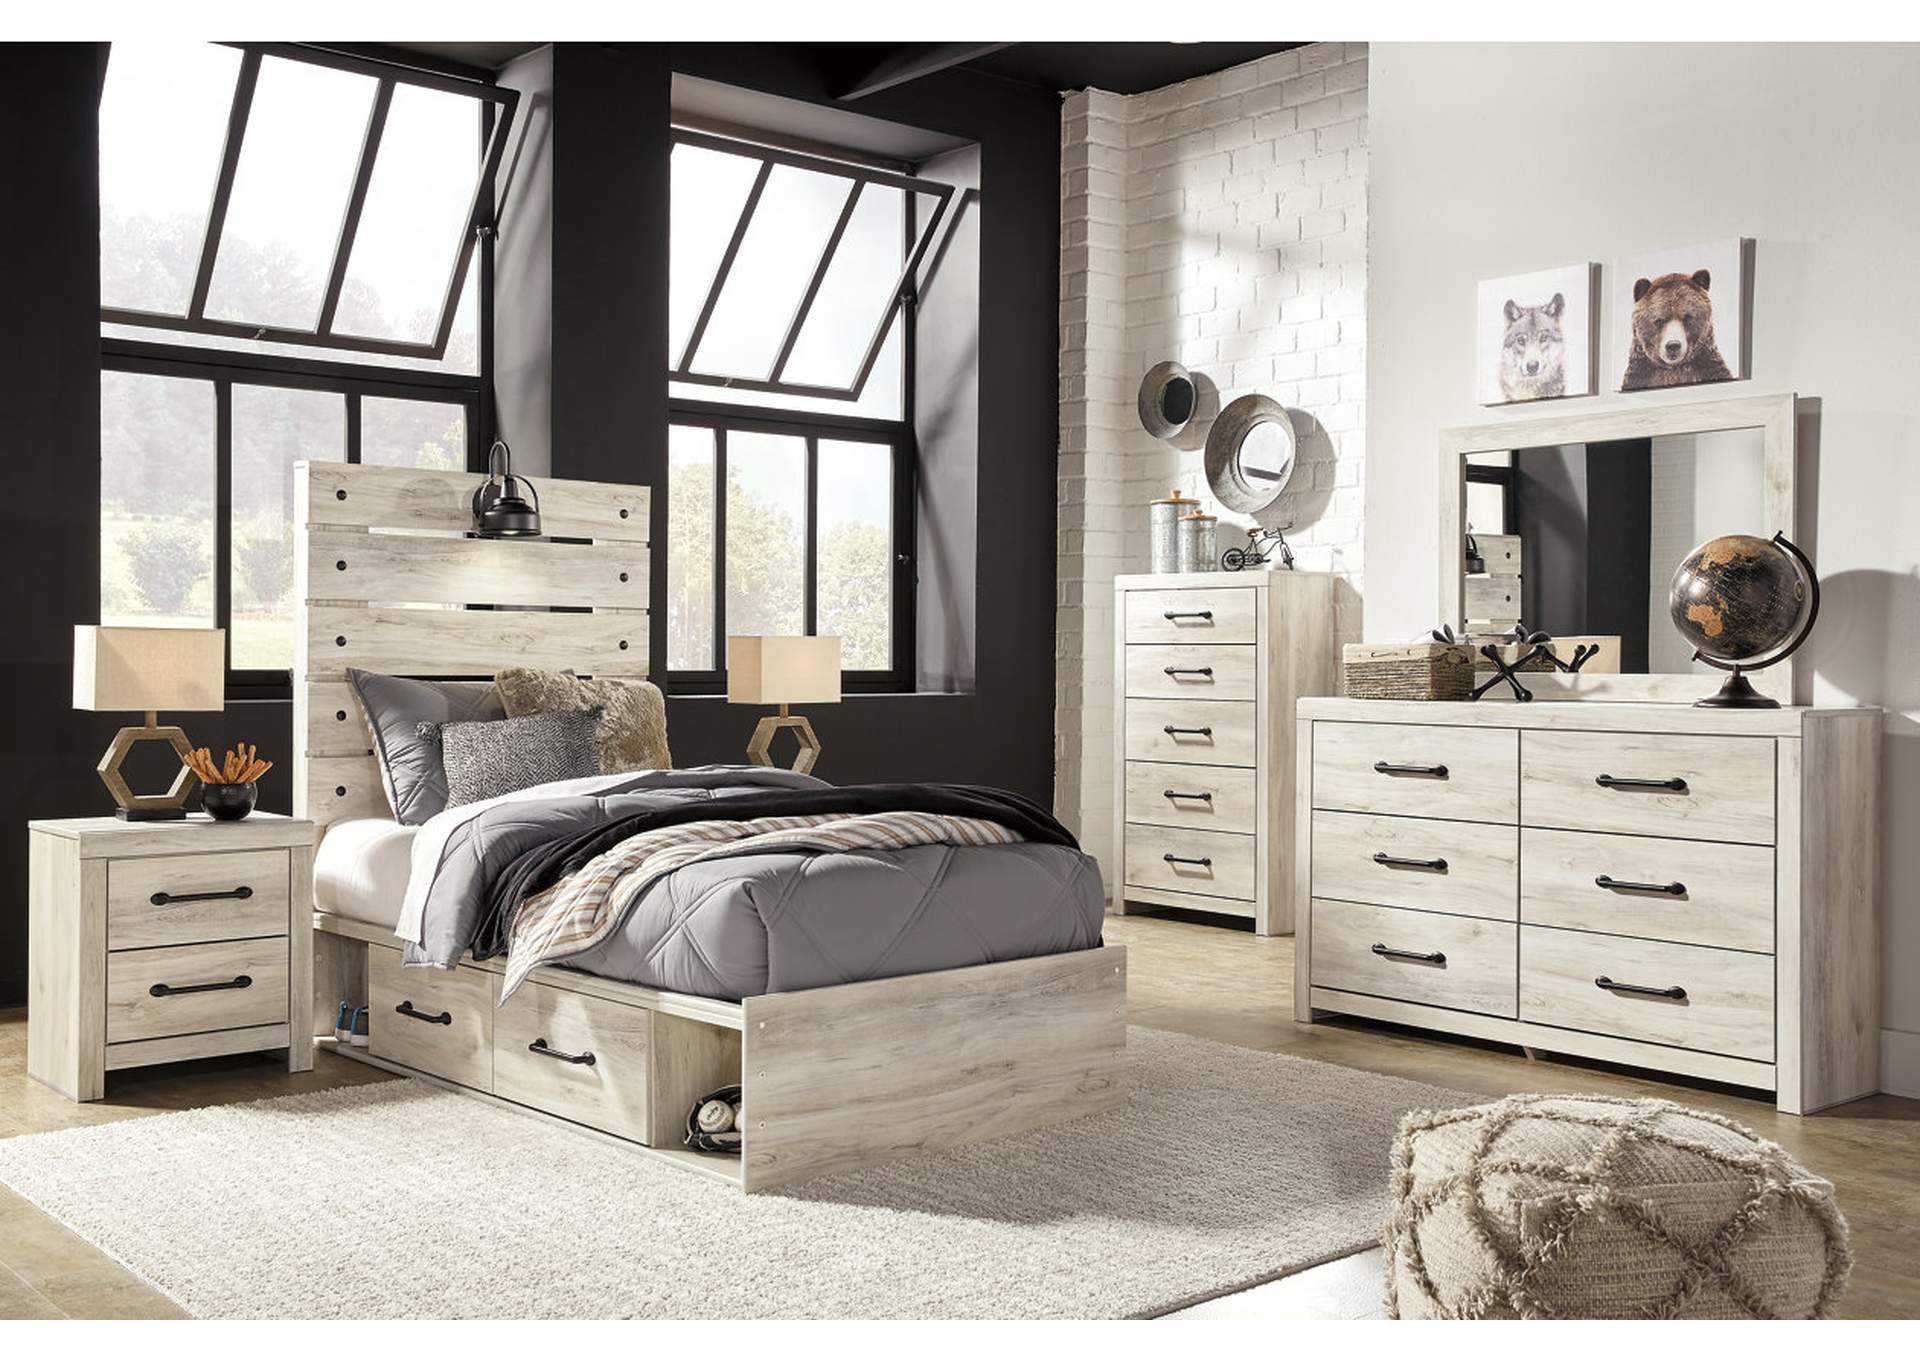 Cambeck Twin Bed w/2 Underbed Storage,Signature Design By Ashley